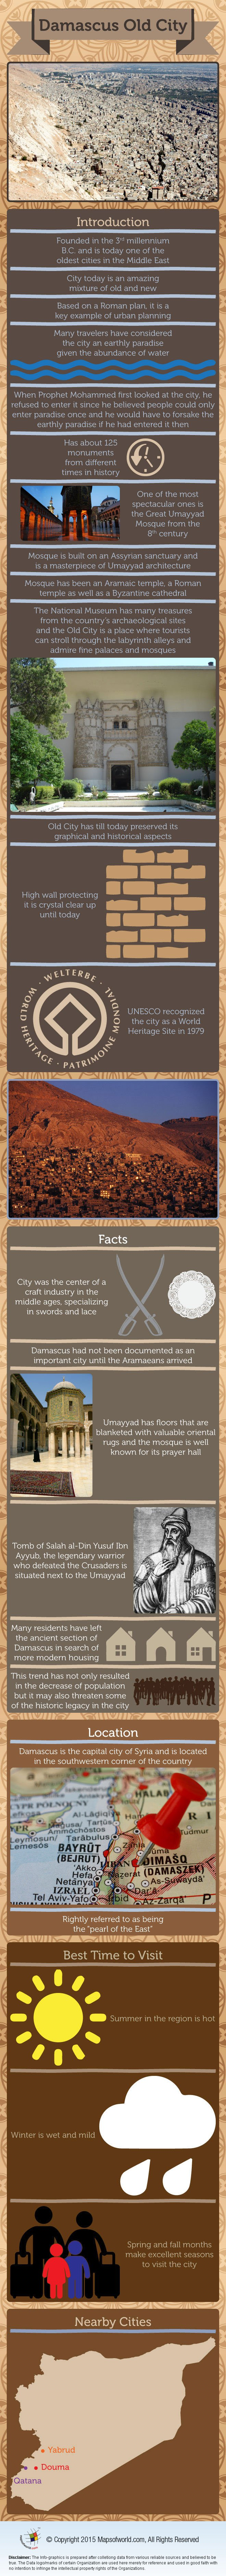 Damascus Old City - Facts & Infographic